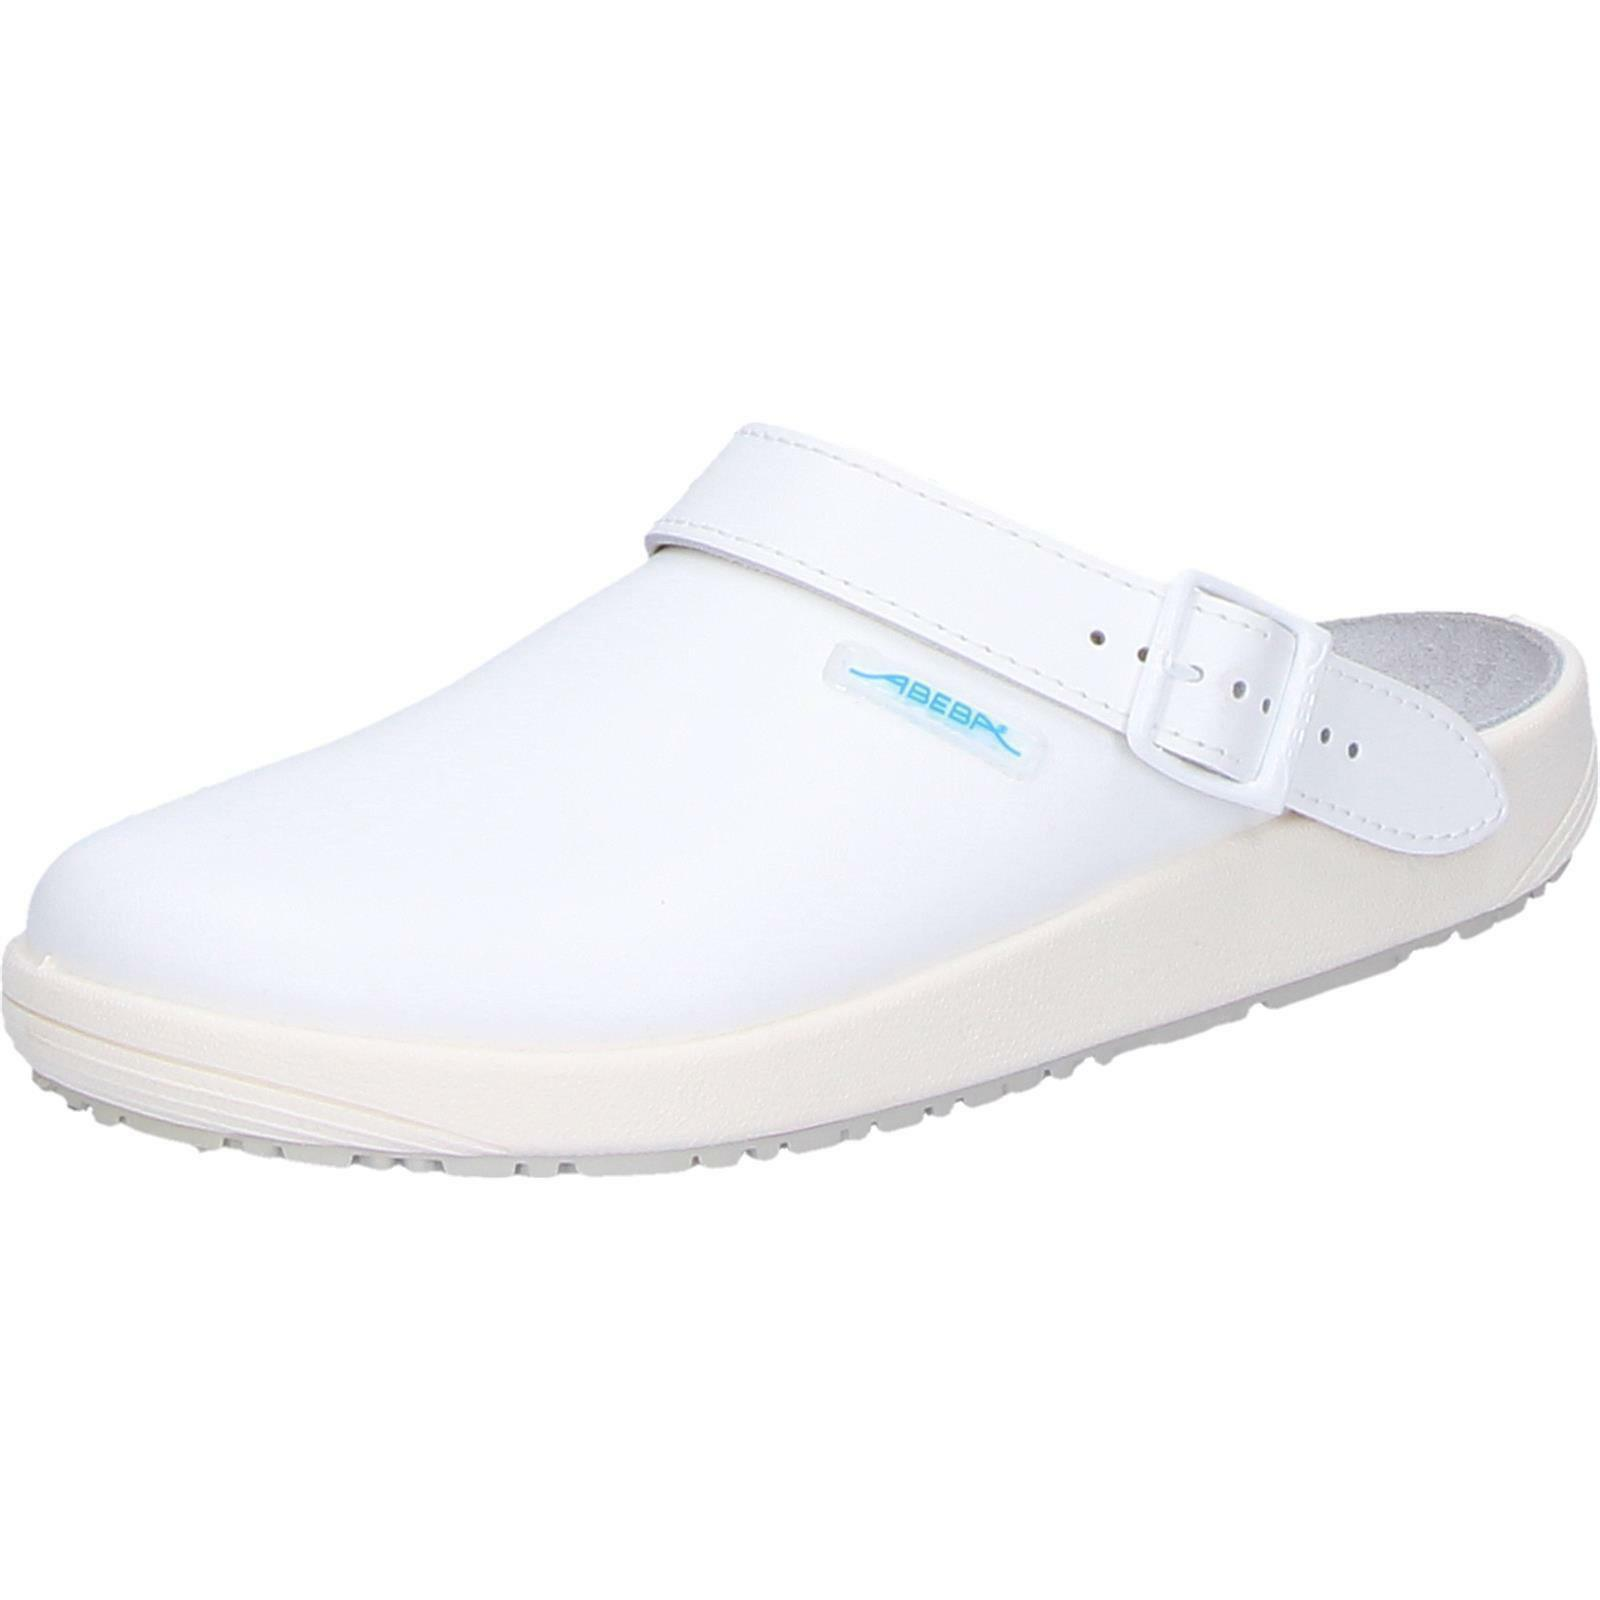 Compter professionnelle Chaussures Travail Chaussures Chaussons Chaussures Couleur Blanc Taille 45